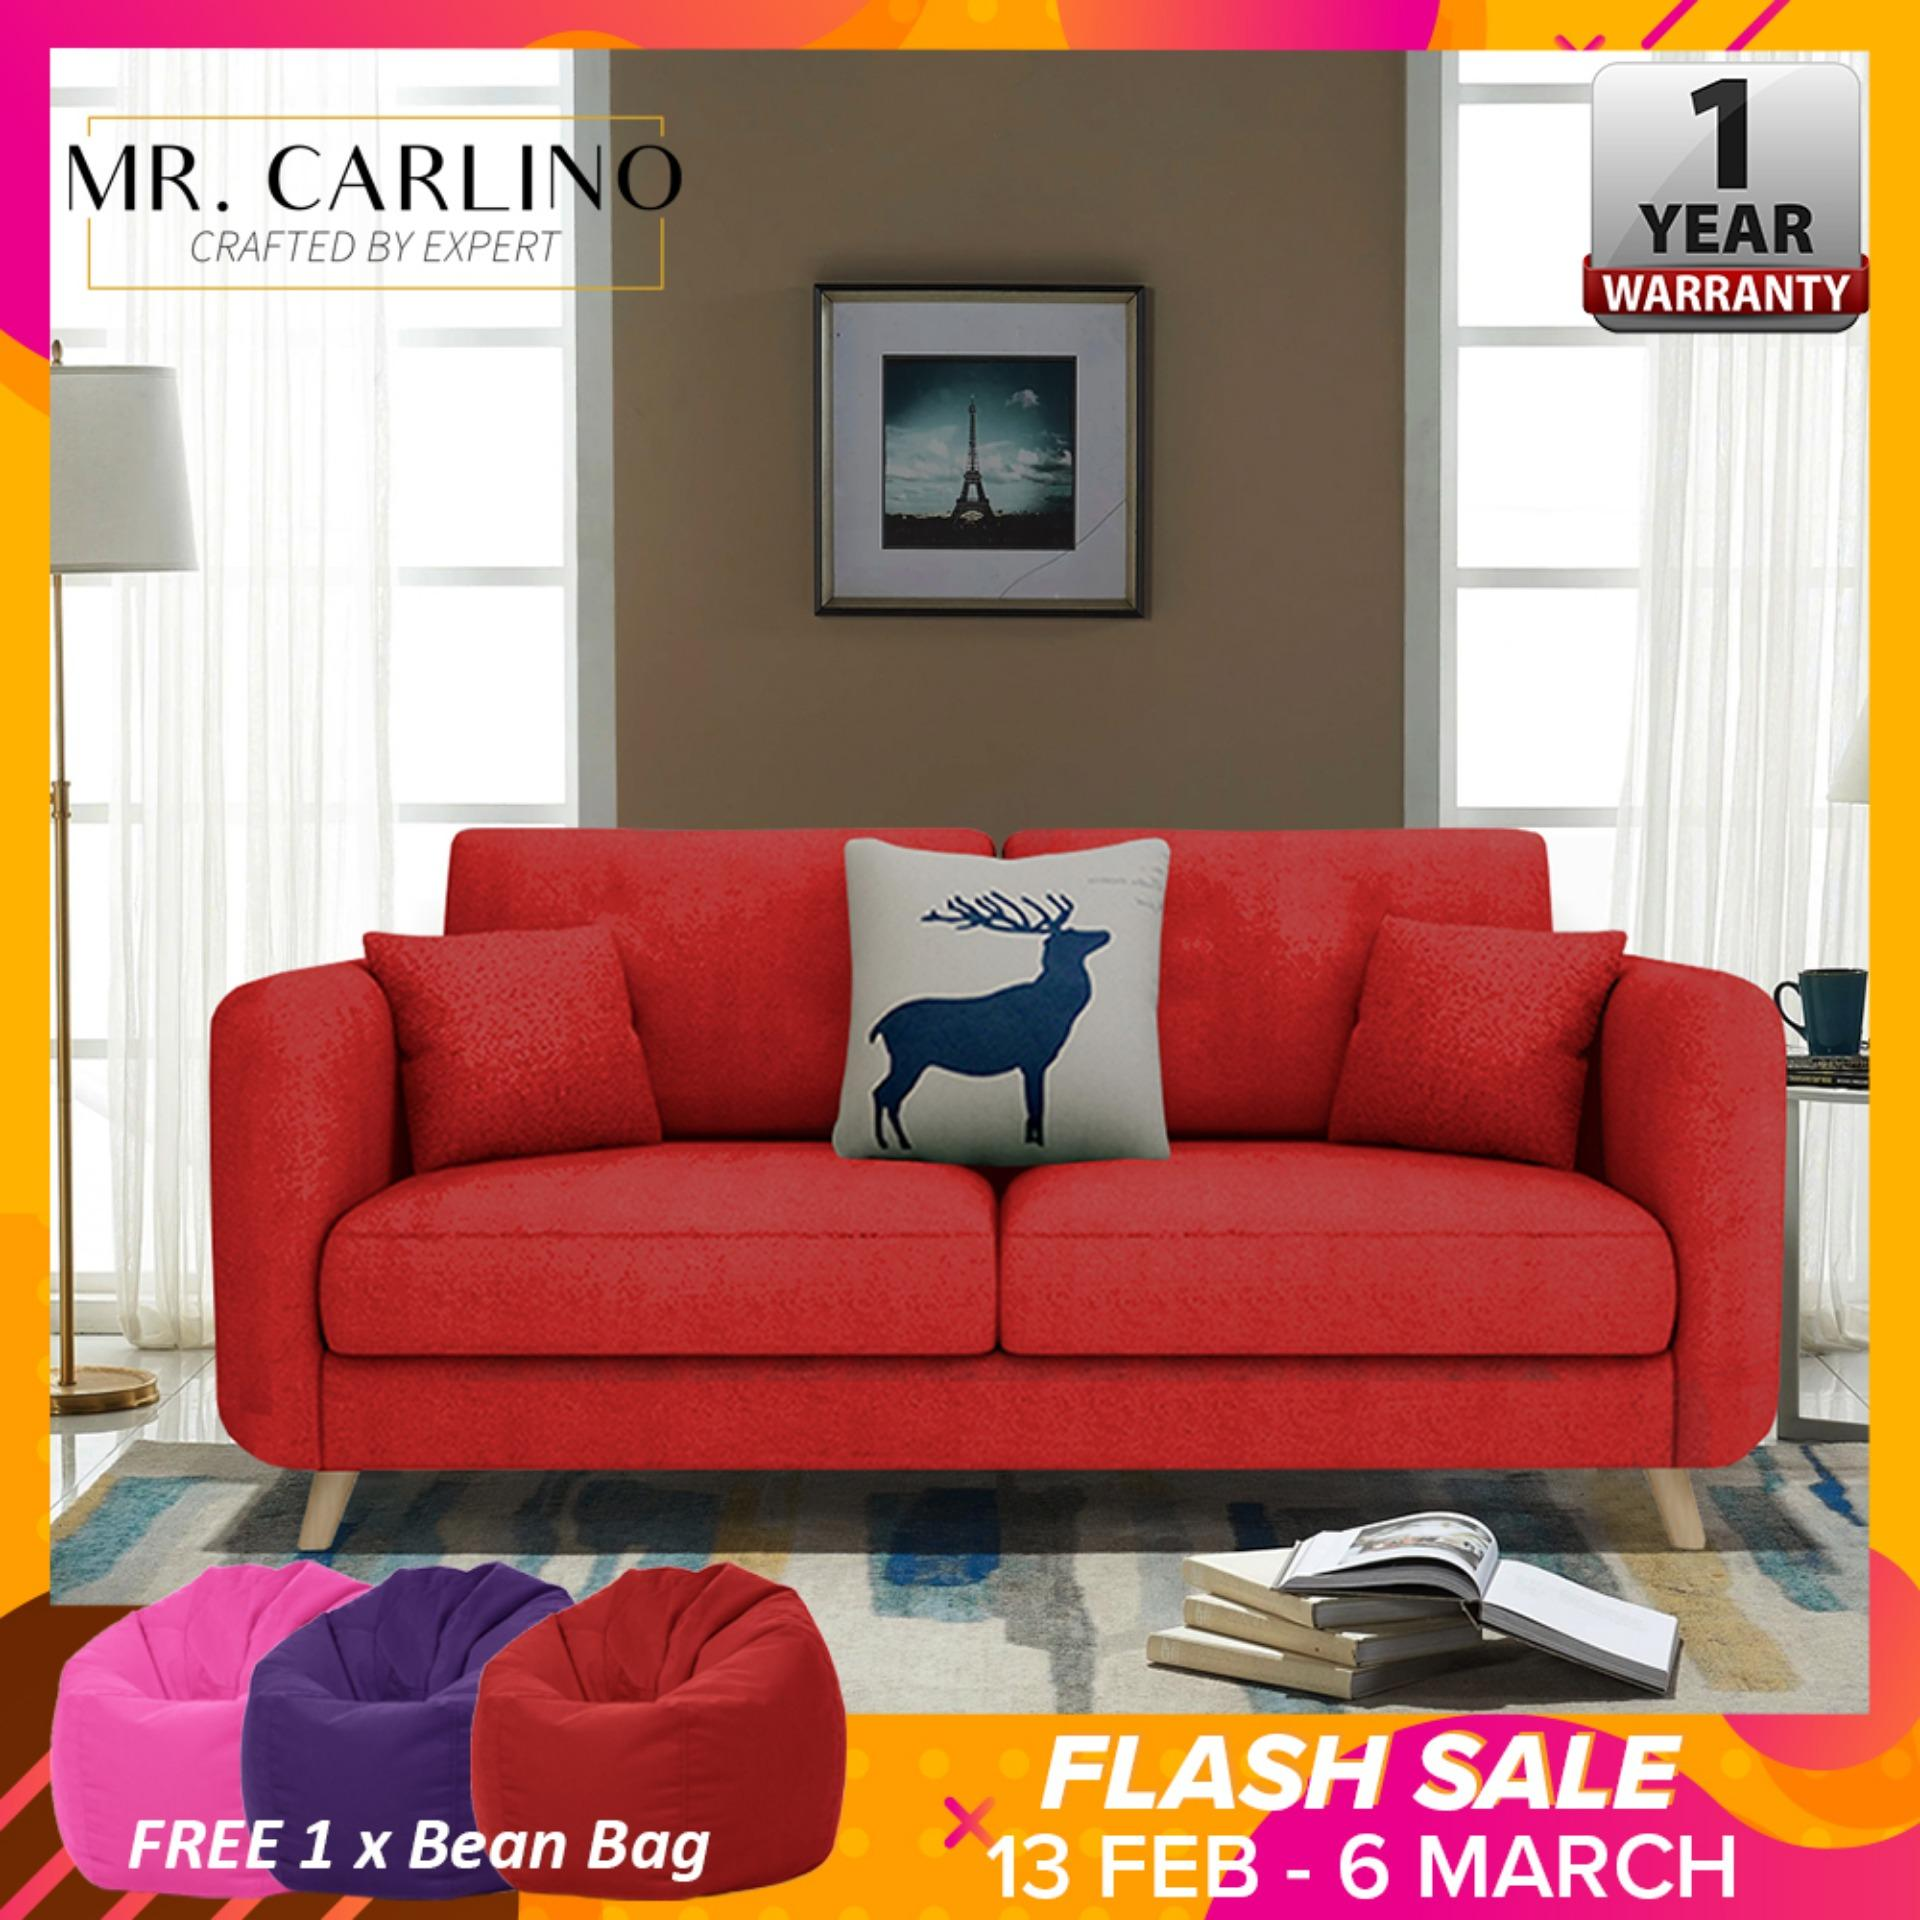 ABIGAYLE 2 Seater Sofa Home & Living Room Furniture with FREE Bean Bag